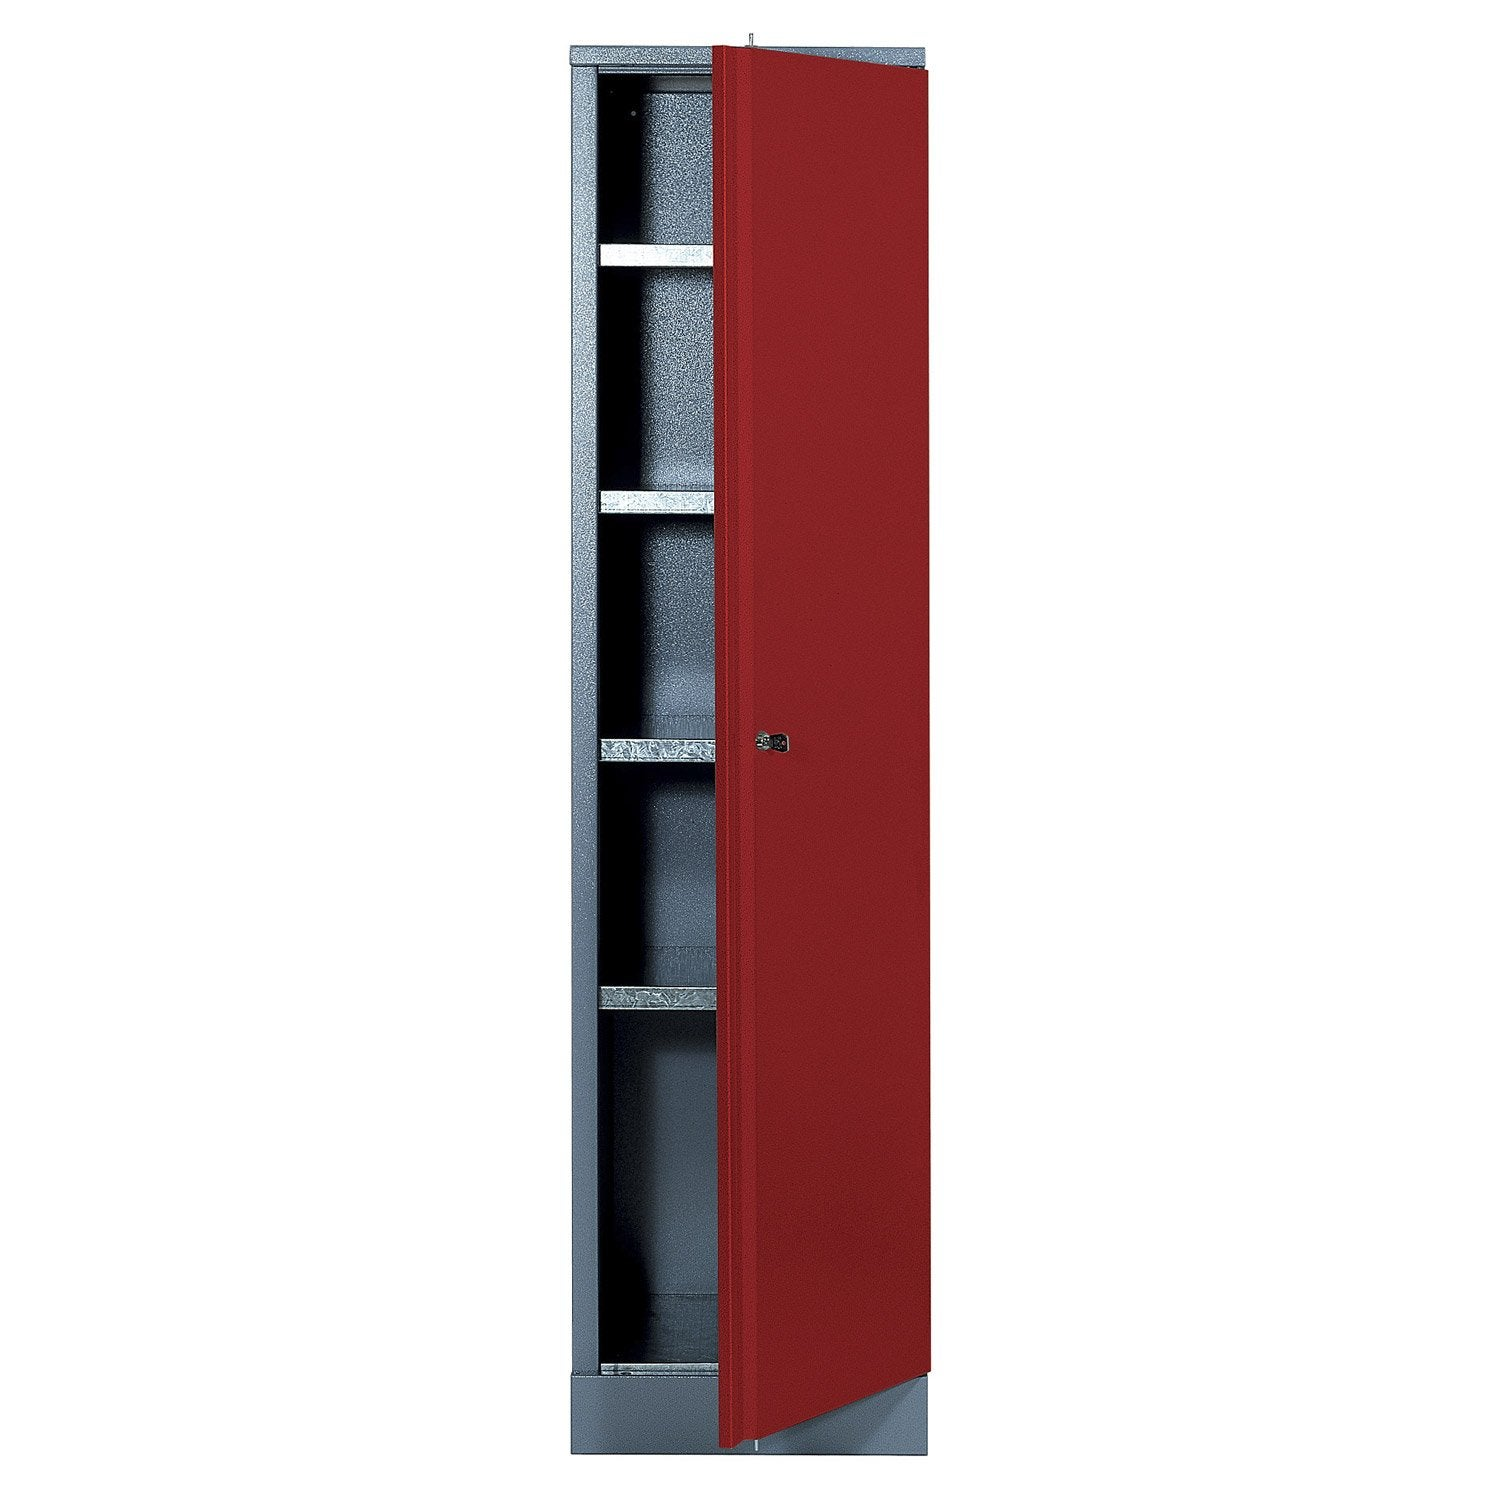 armoire de rangement en m tal rouge kupper 45 5 cm 1 porte leroy merlin. Black Bedroom Furniture Sets. Home Design Ideas